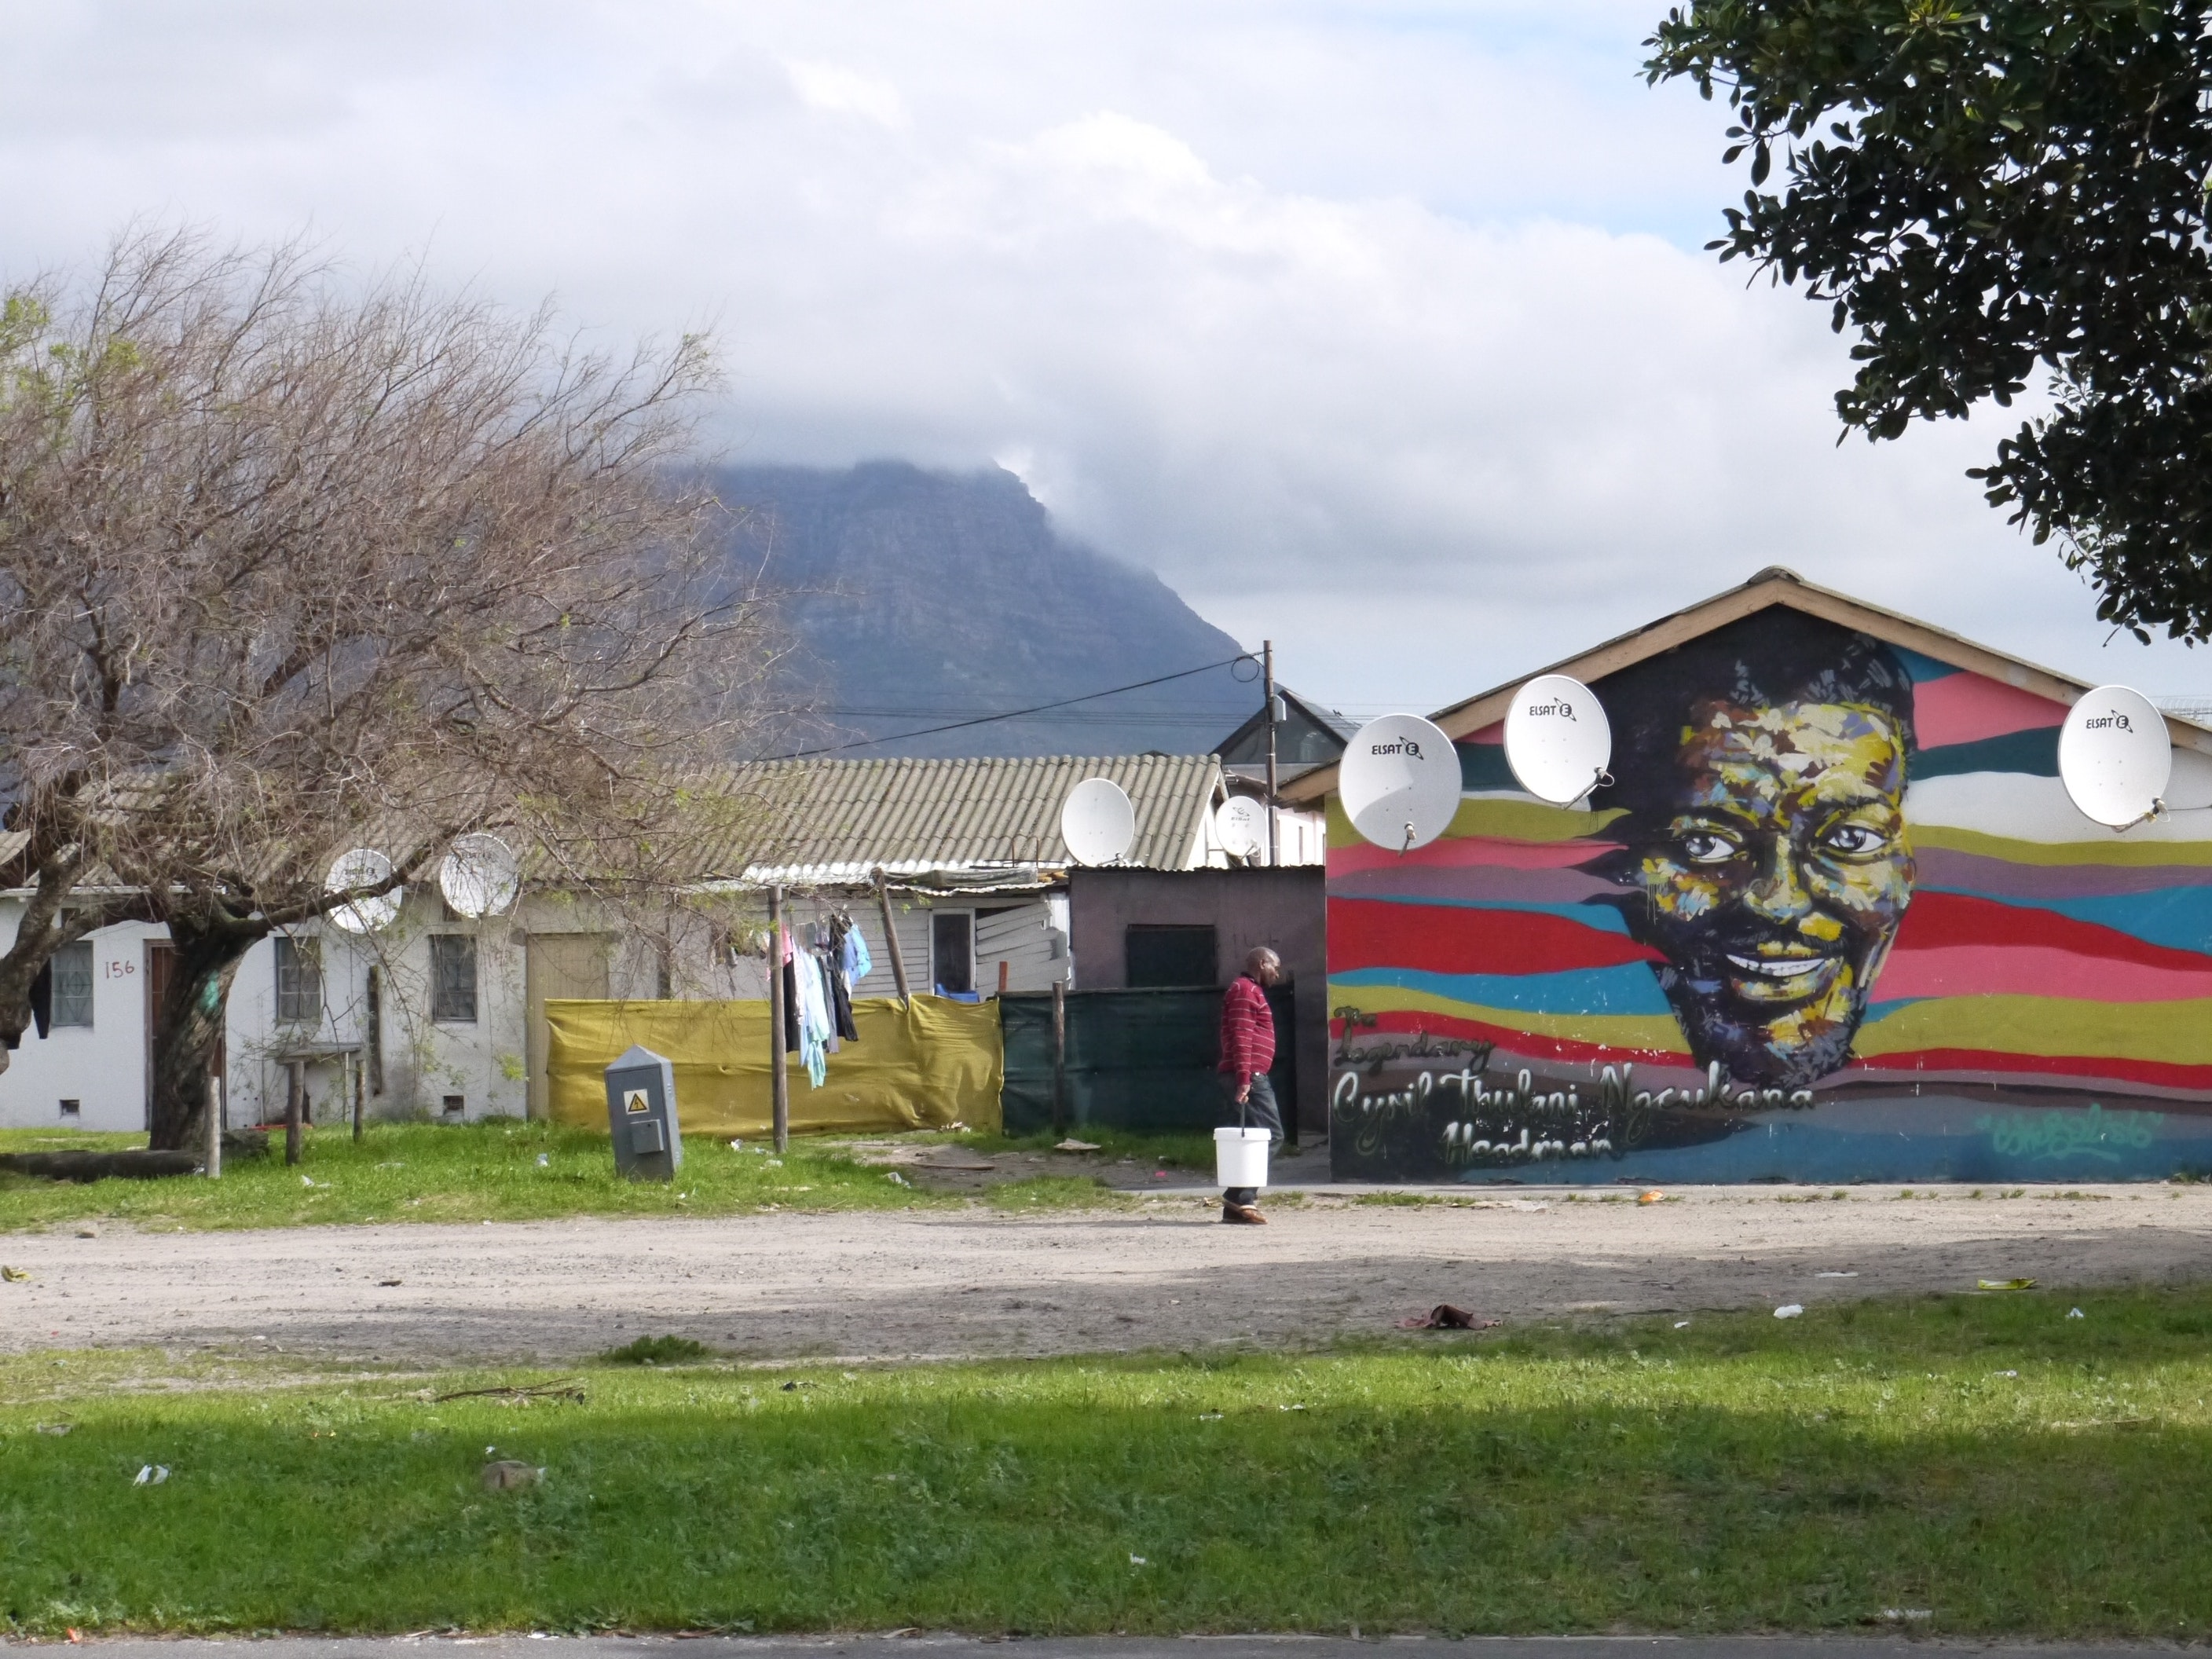 Art peers out from all kinds of surfaces in Langa township.